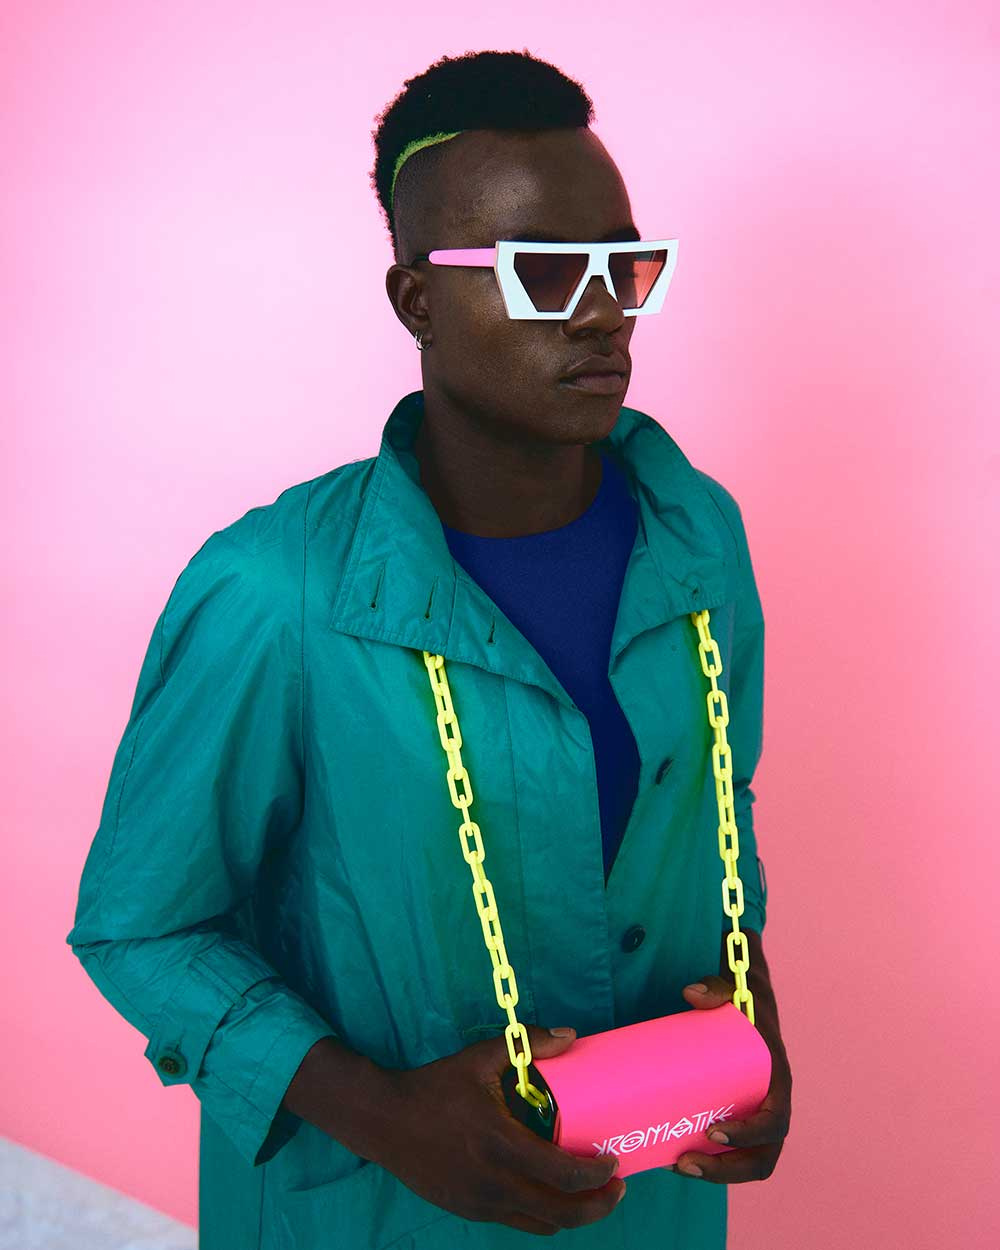 man in green jacket wearing sunglasses and pink bag